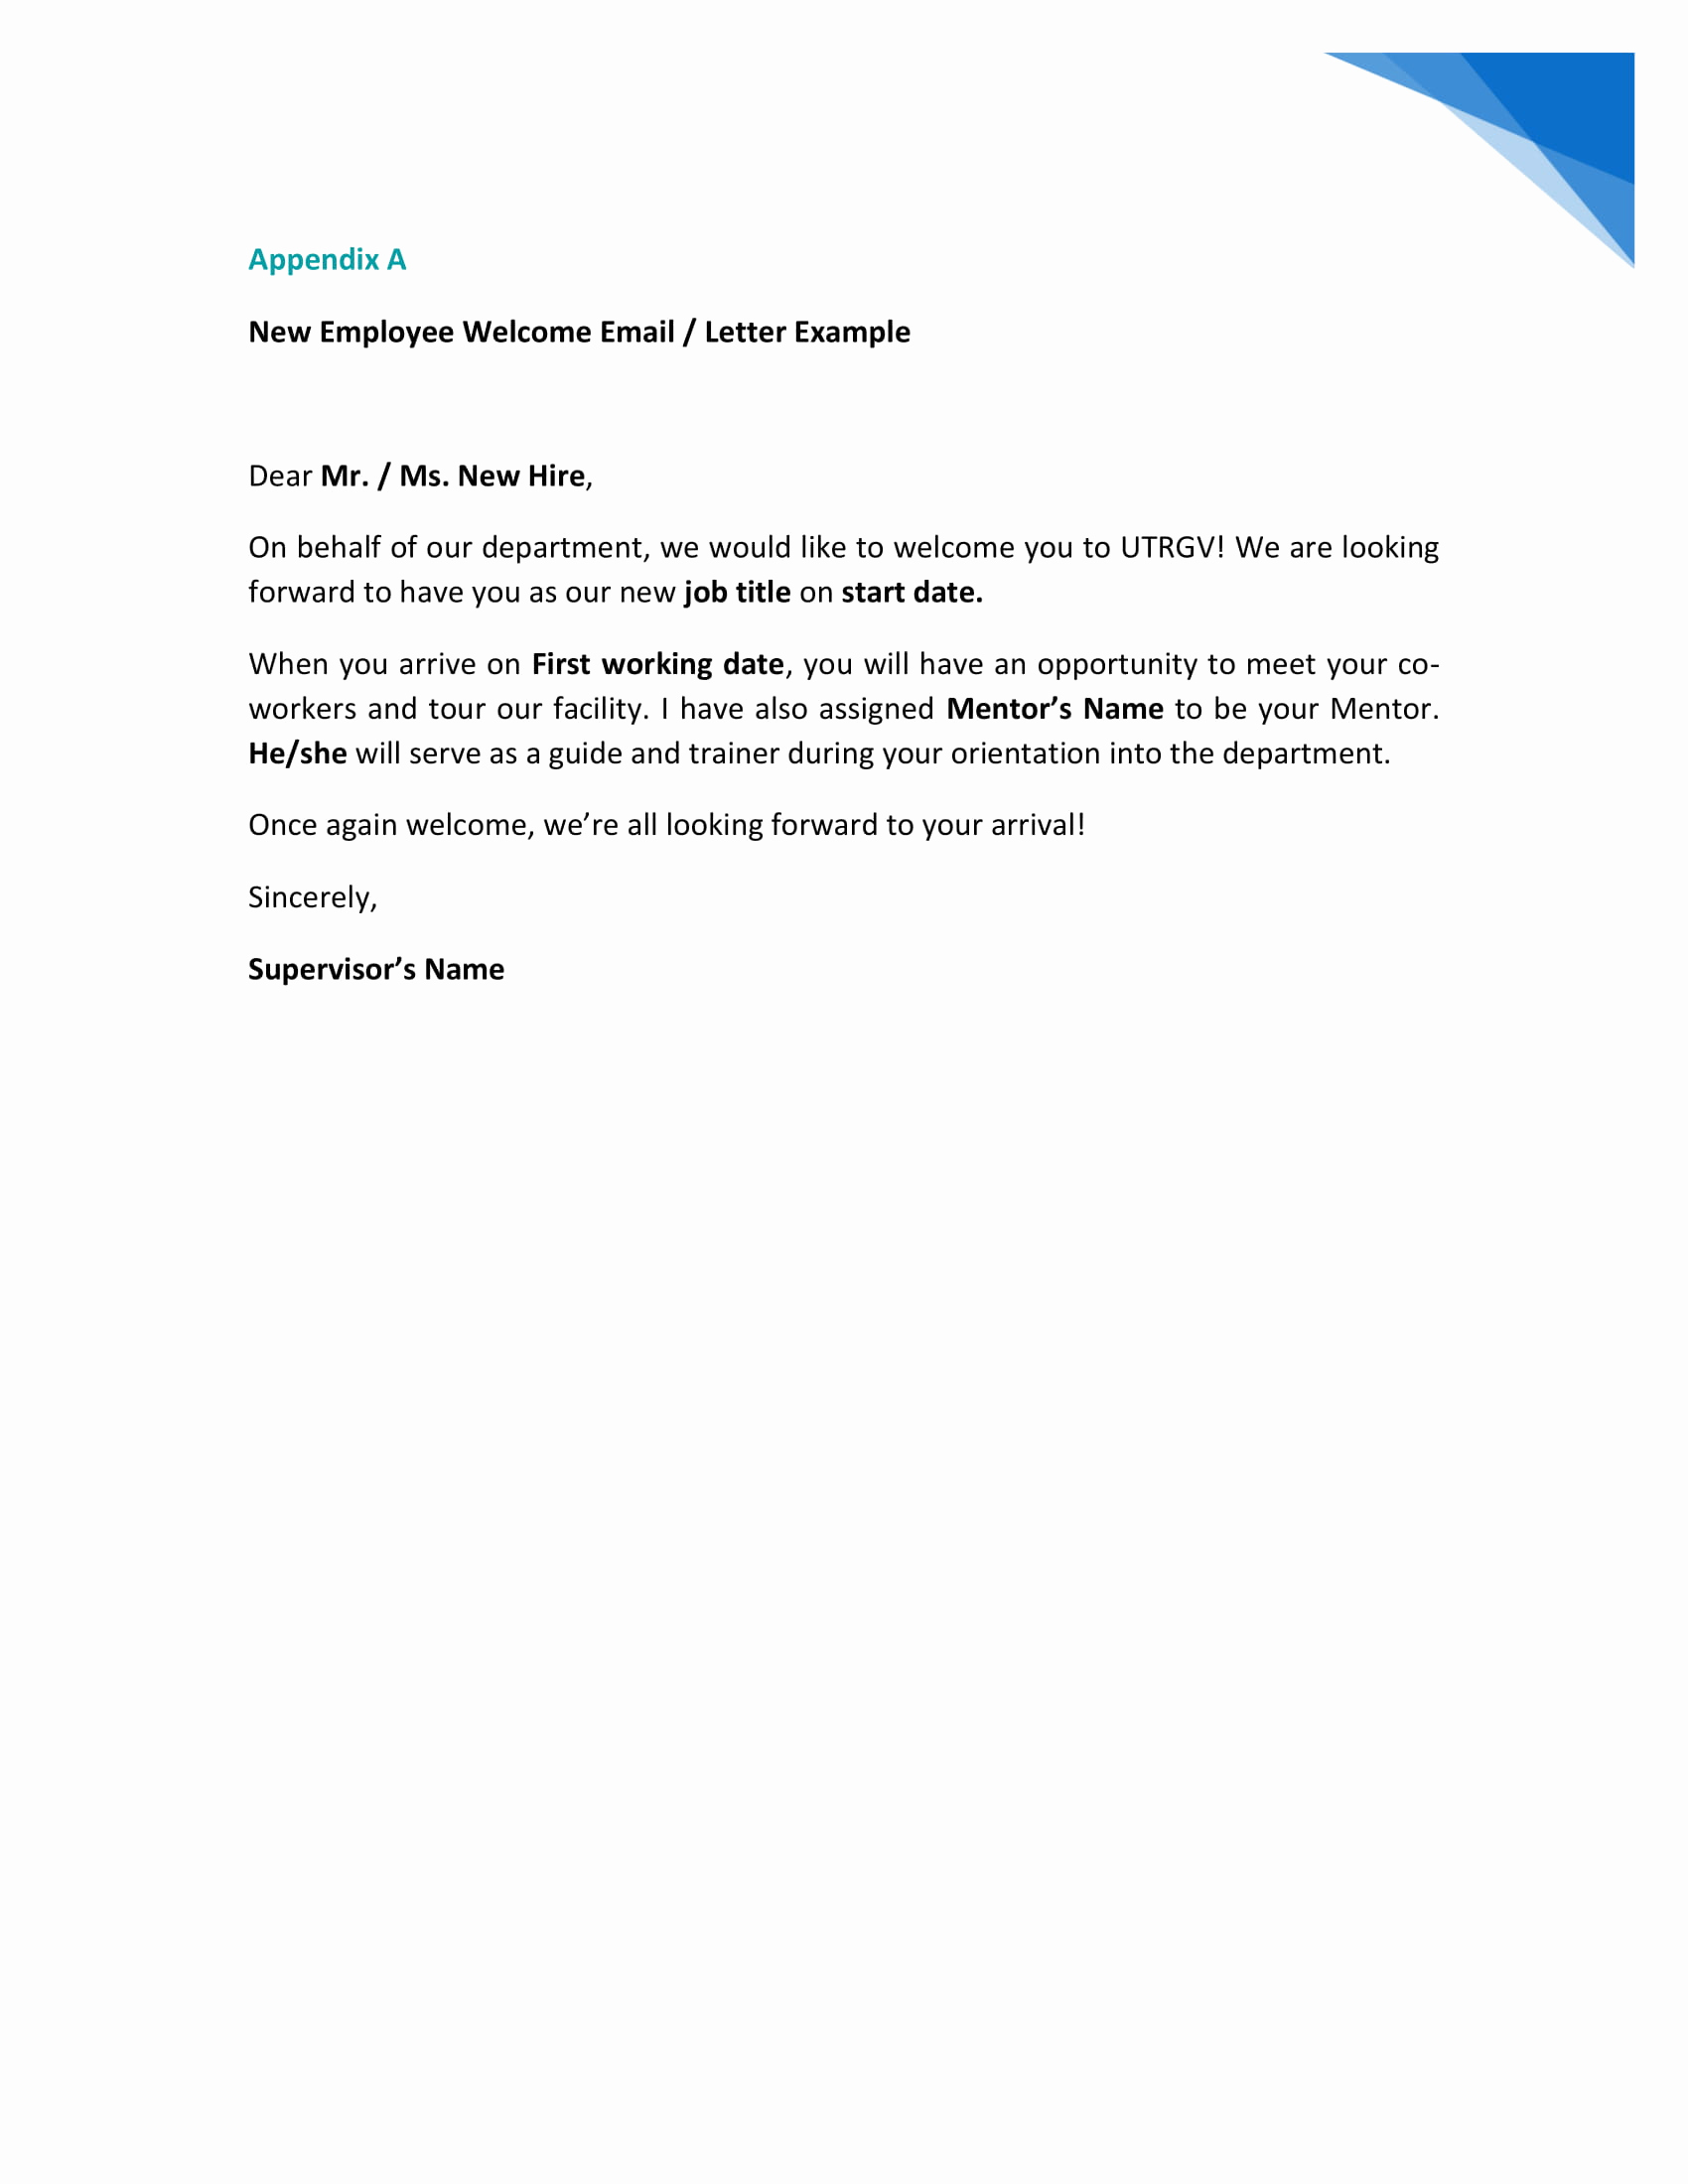 Welcome Letter to New Employee Awesome 9 New Hire Wel E Letter Examples Pdf